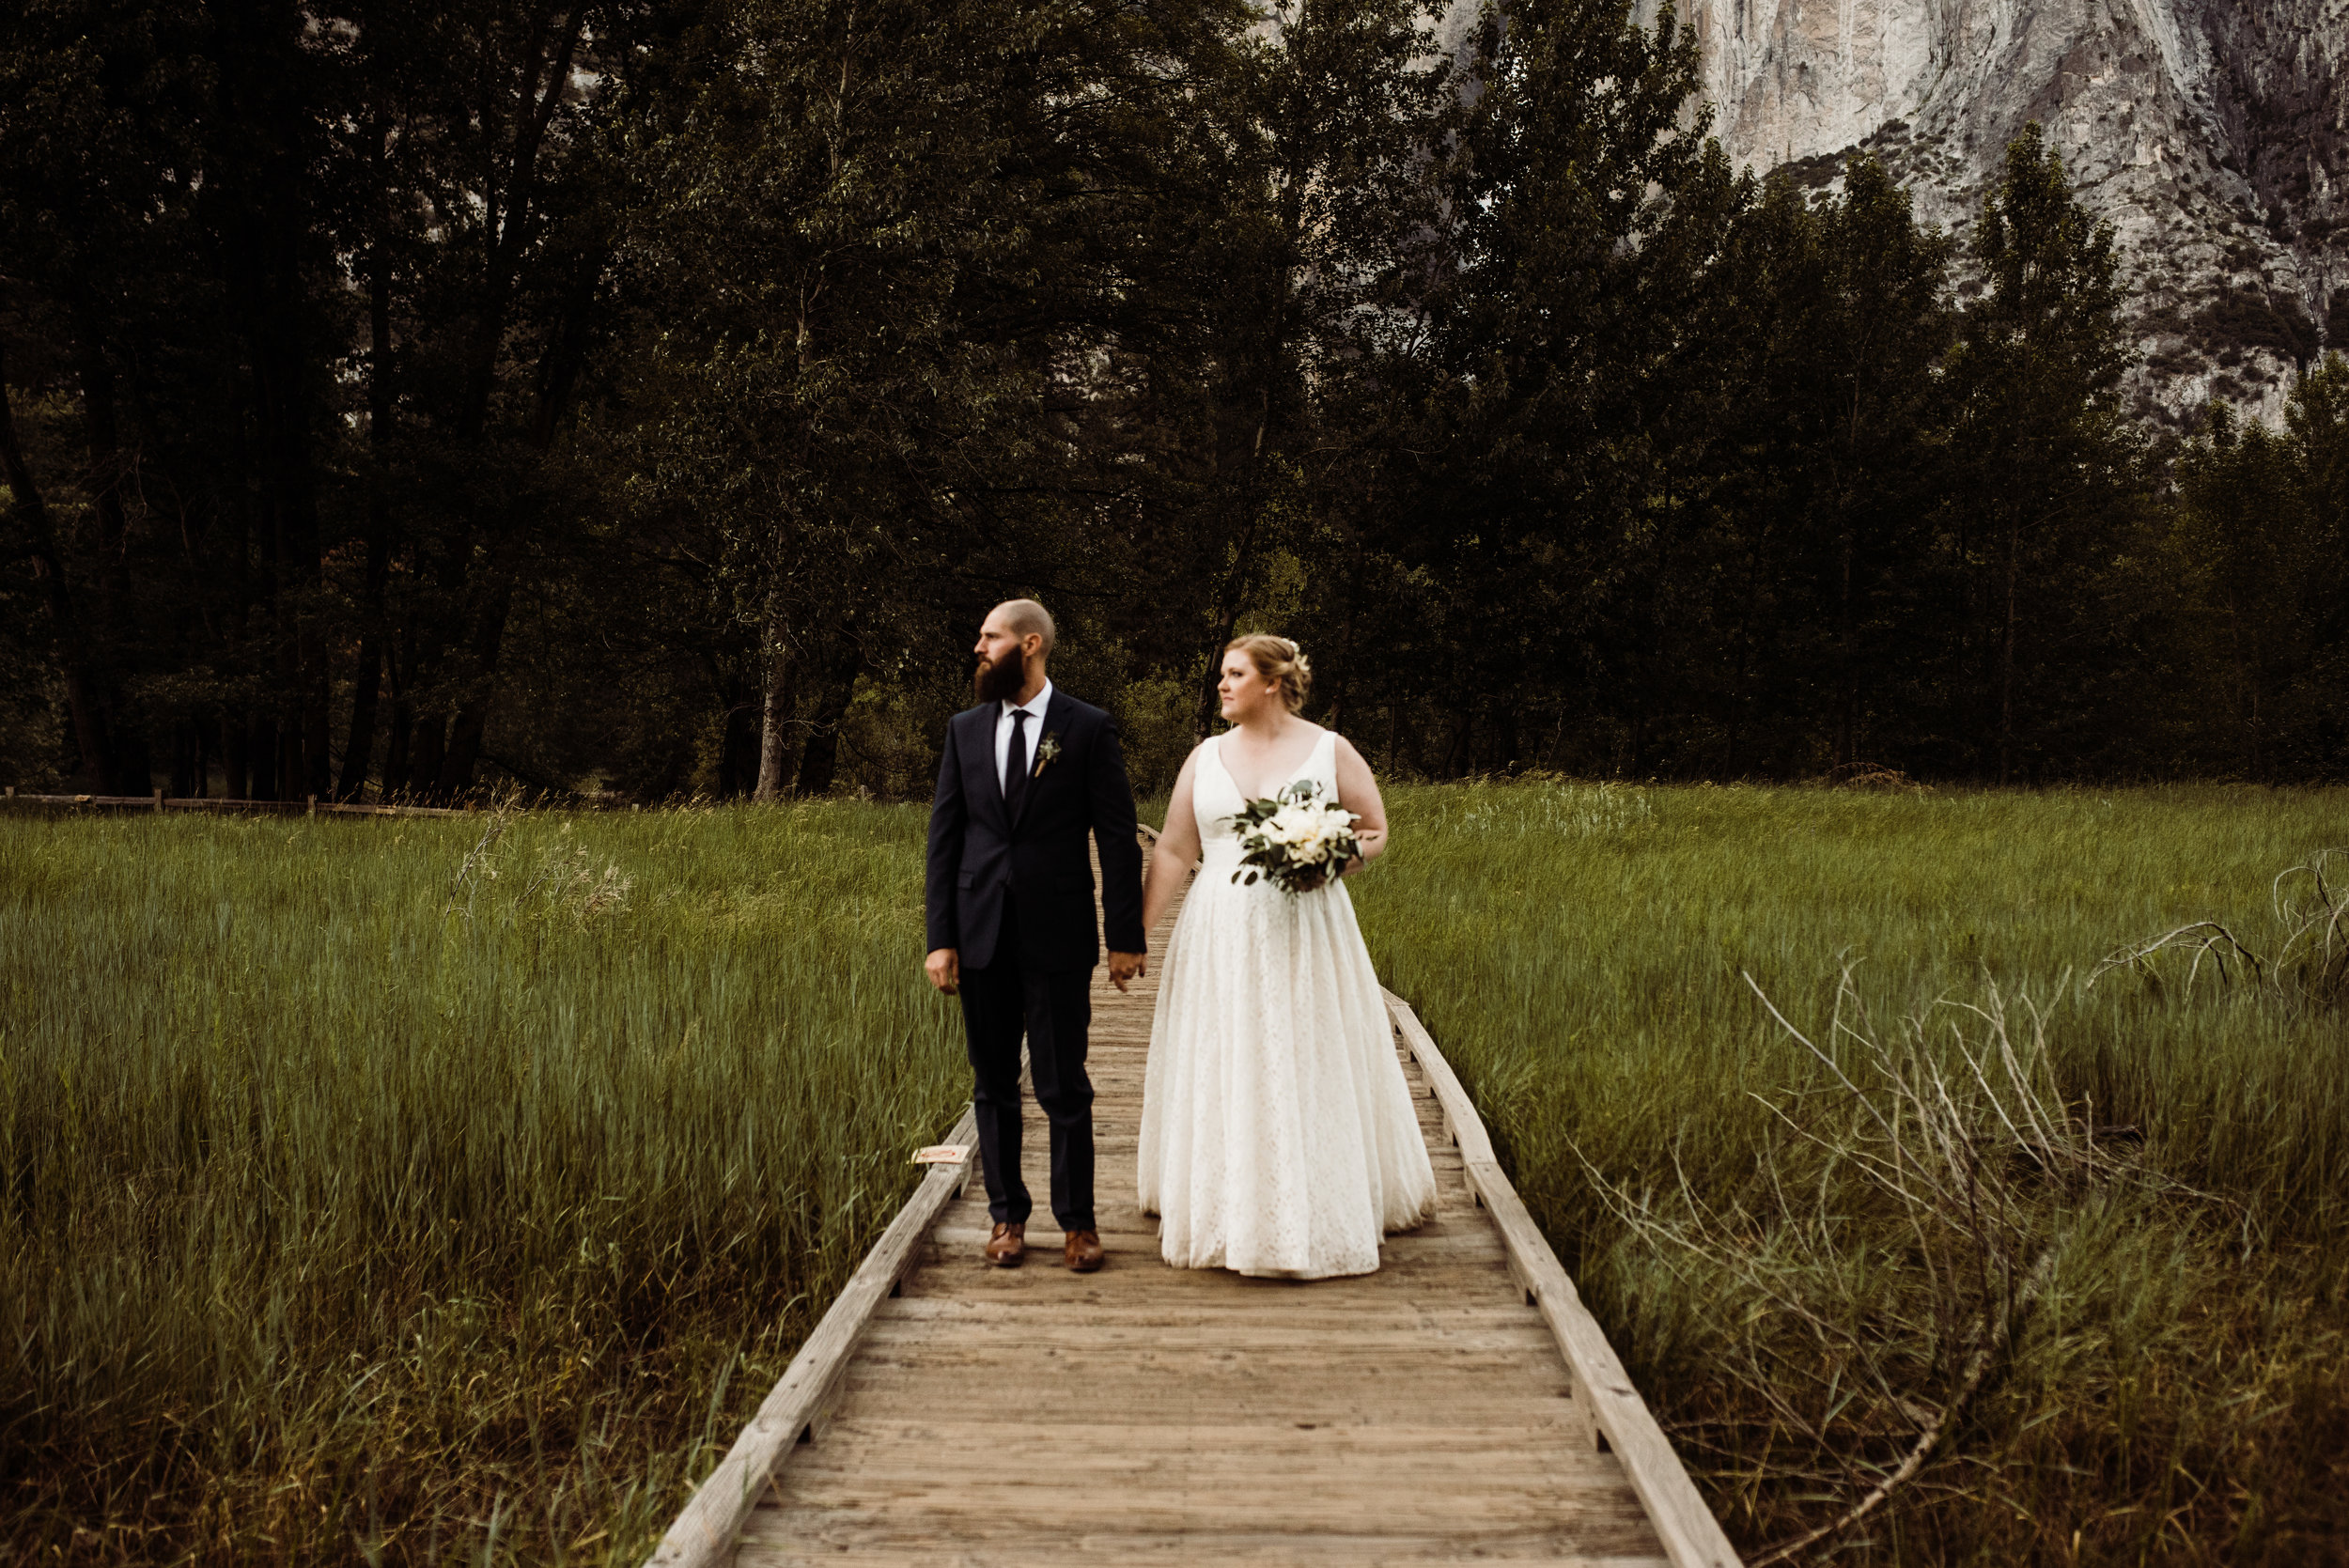 Adventurous couple exploring Yosemite Valley after their elopement ceremony